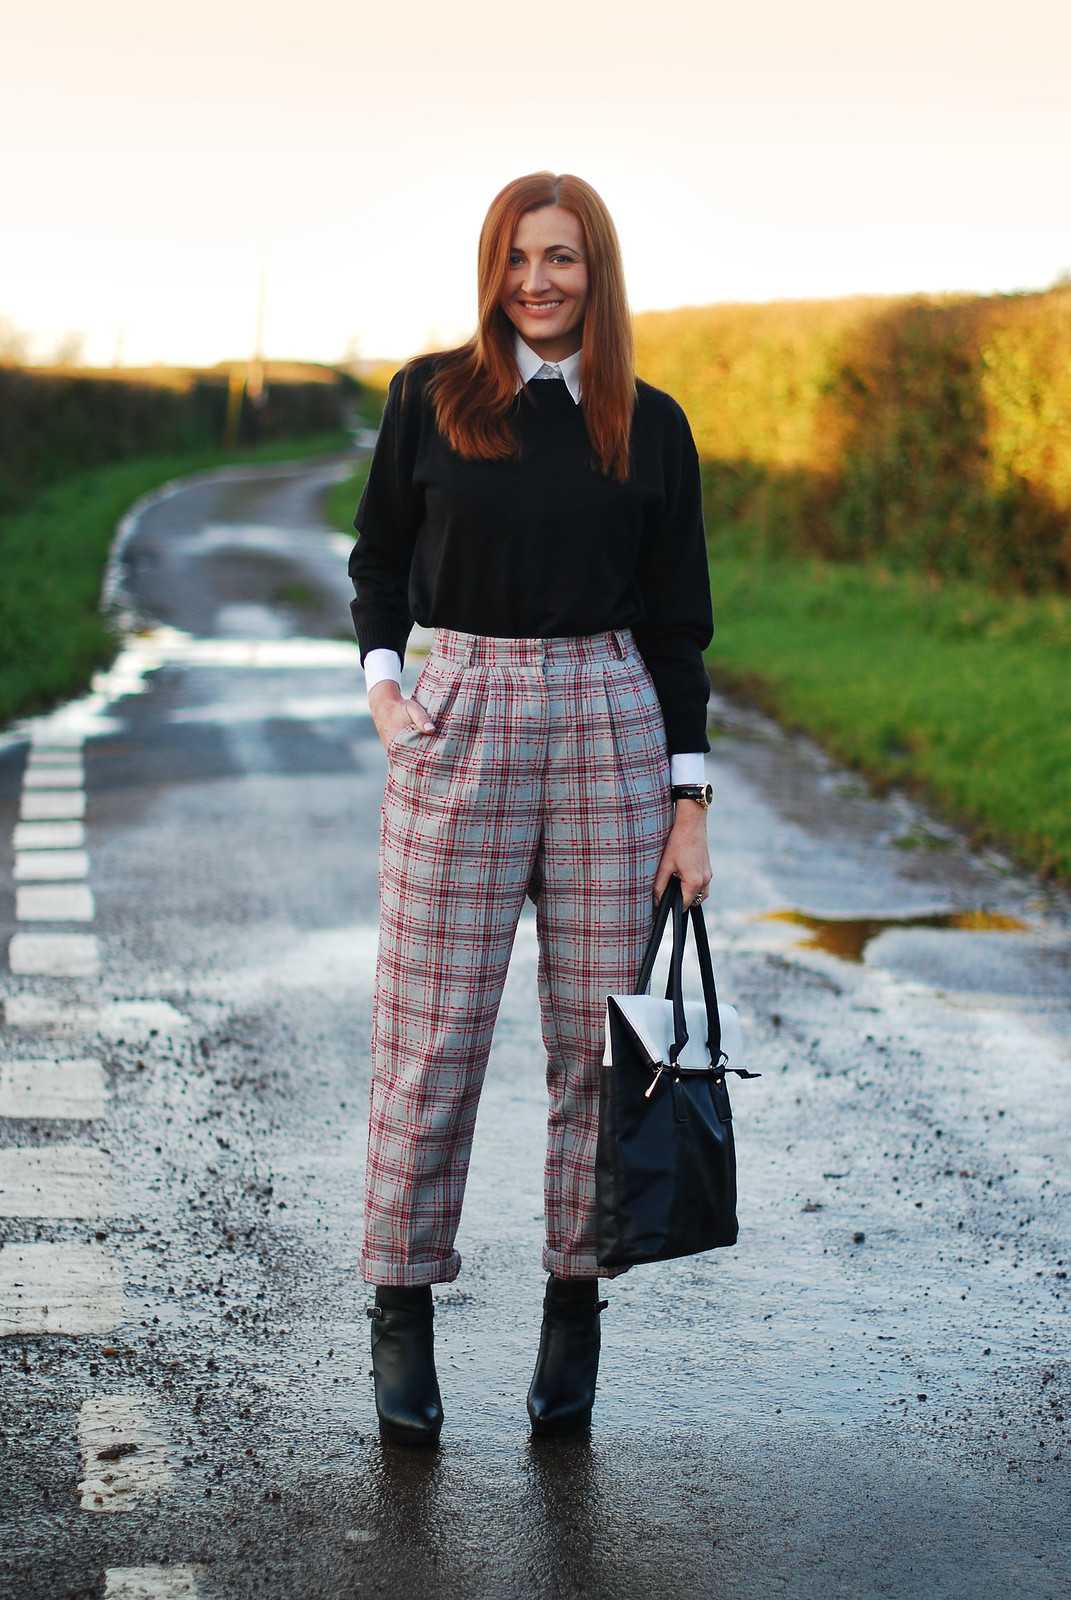 Black & white with grey tartan check